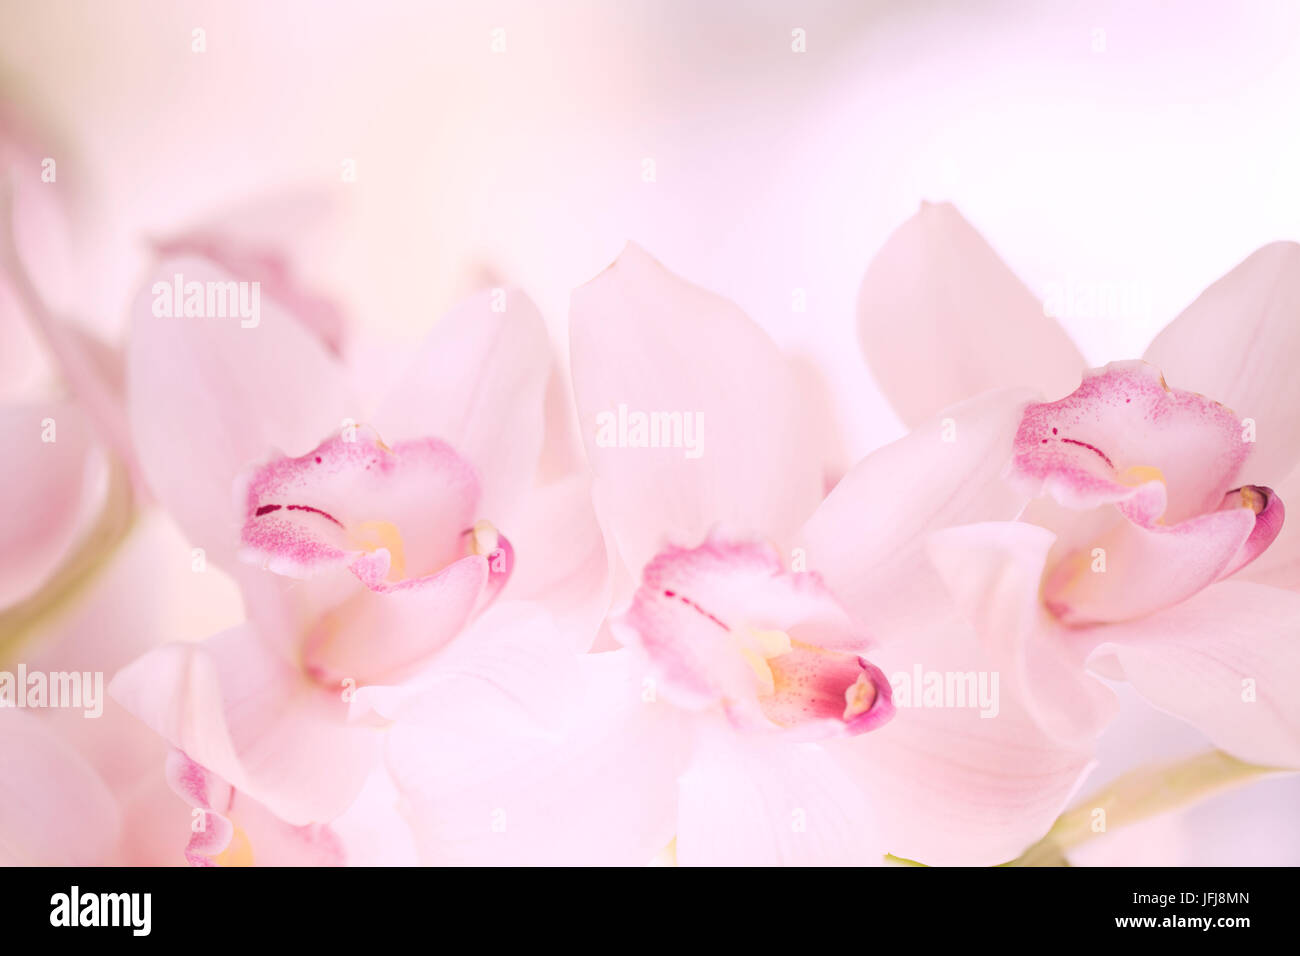 Enchanting pastel pink orchid flowers - Stock Image